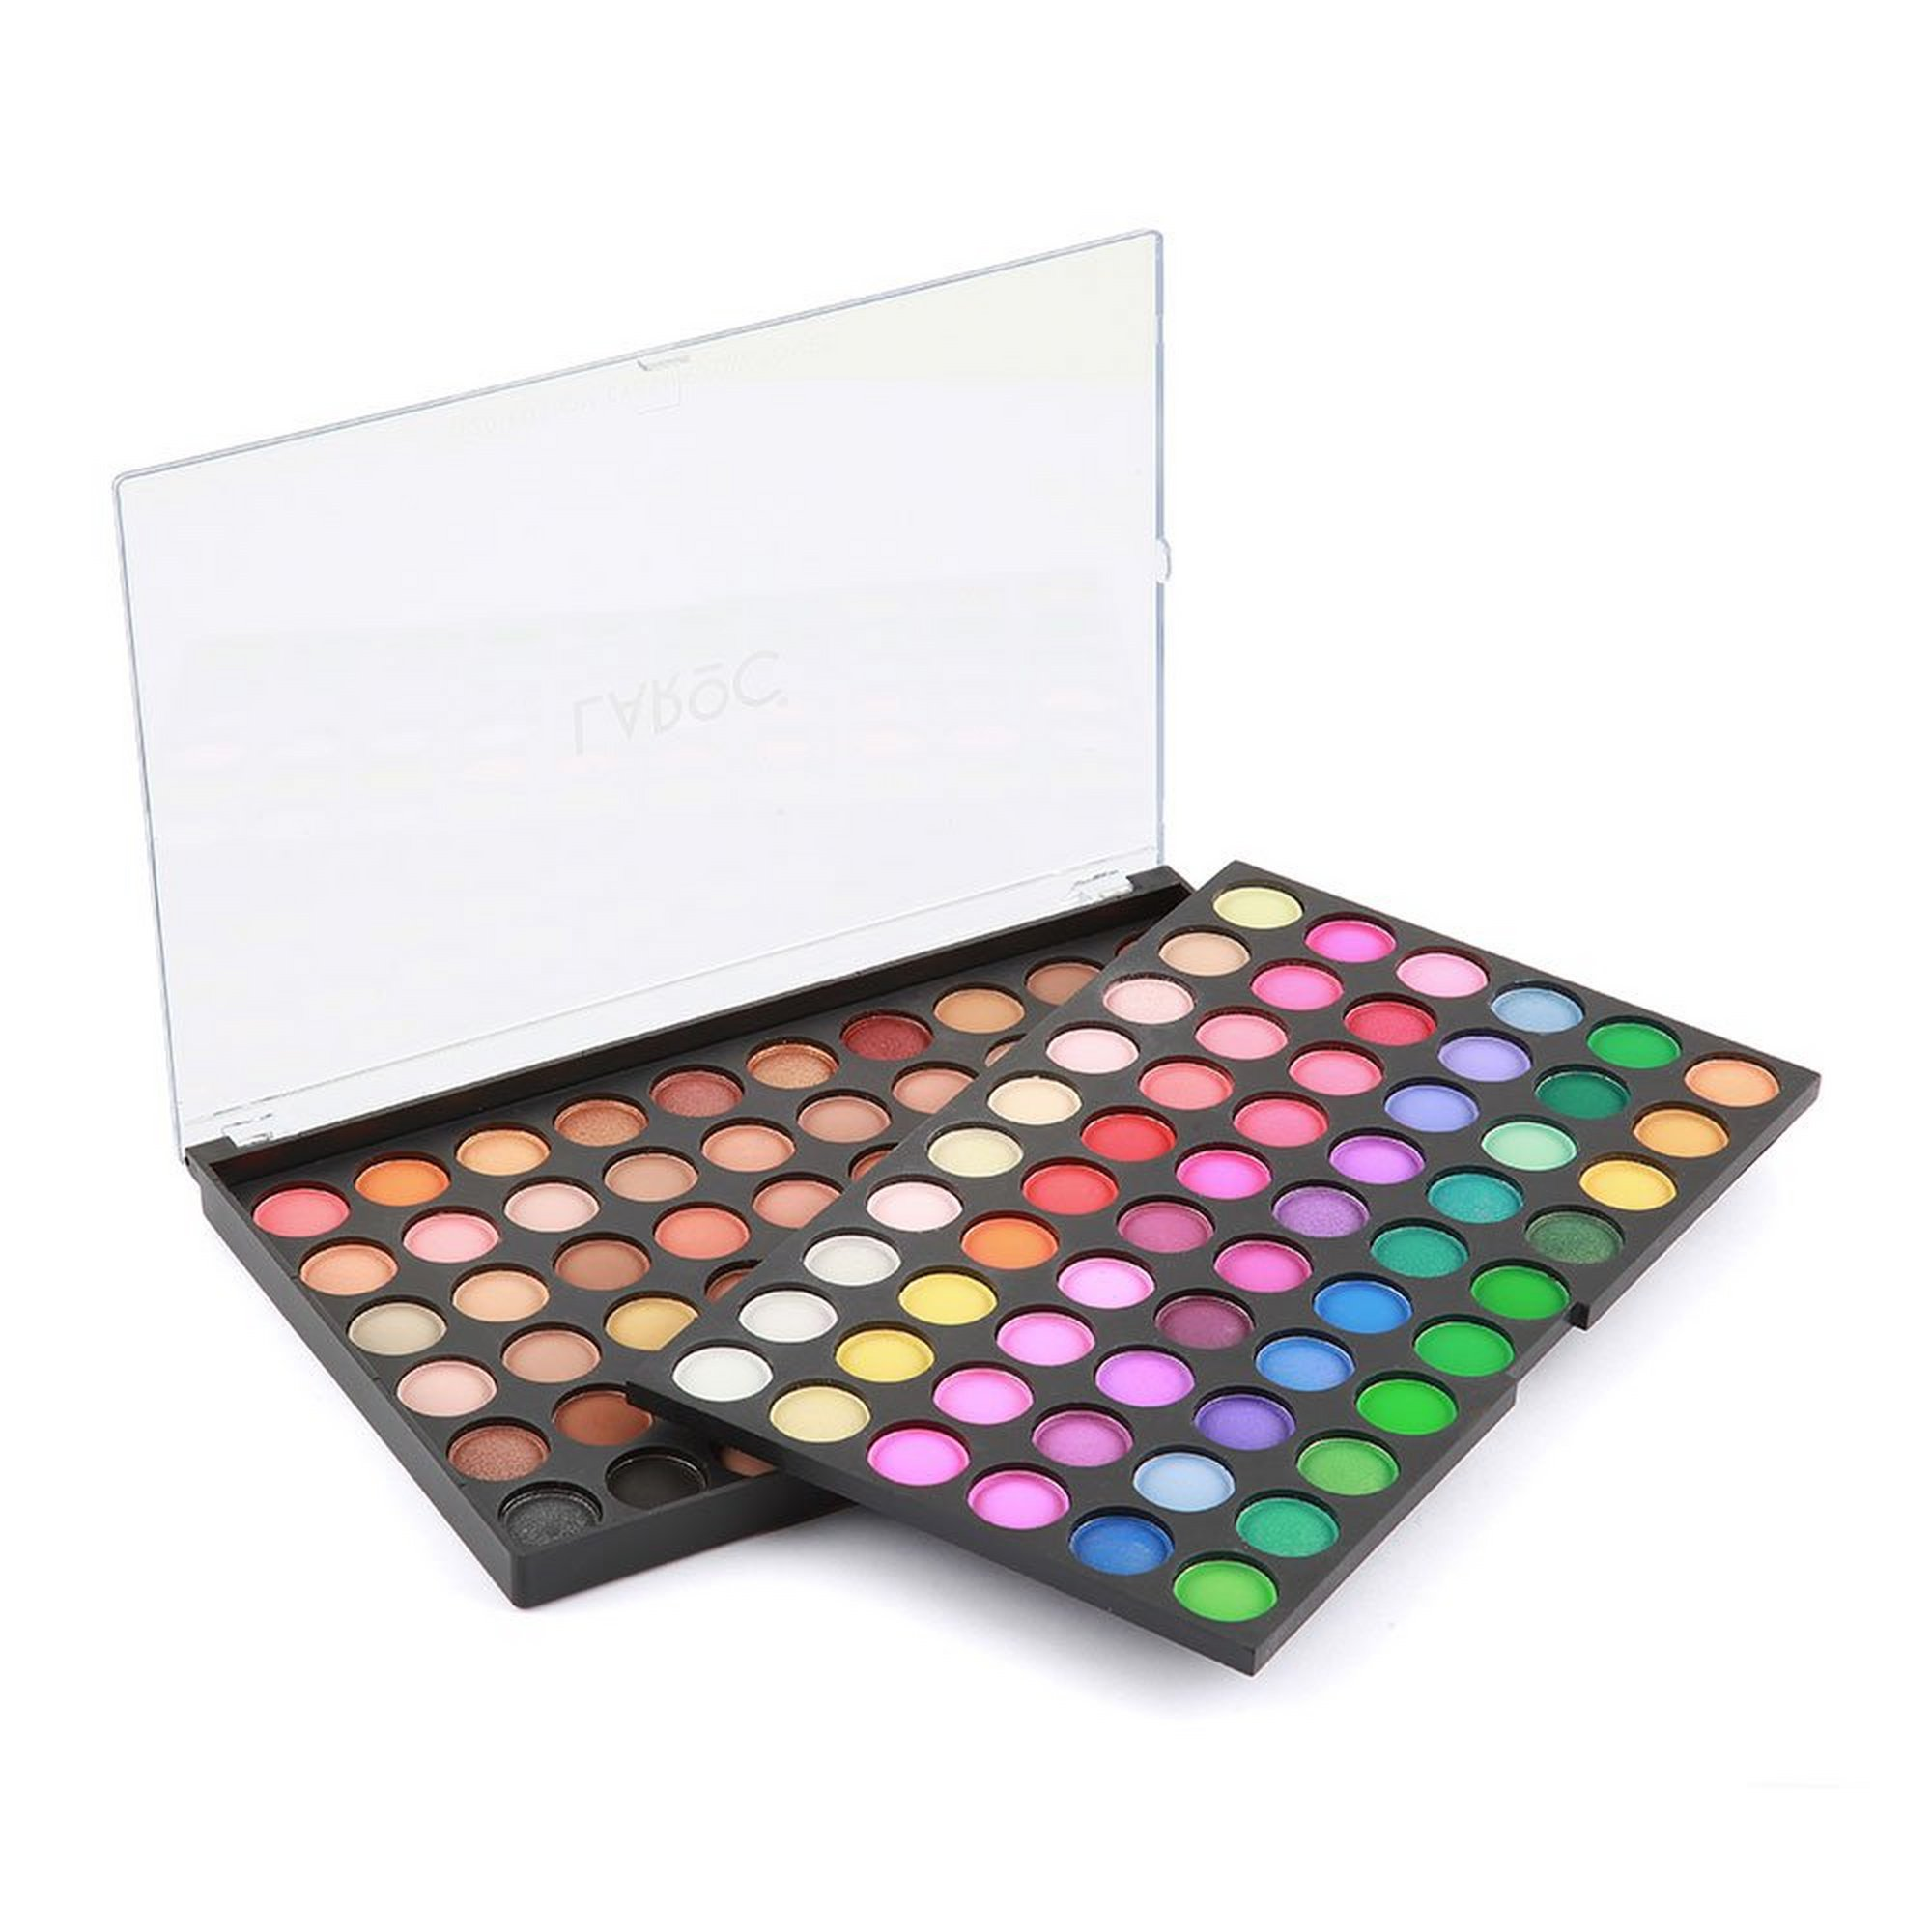 Image of LaRoc 120 Eyeshadow Palette in Fusion